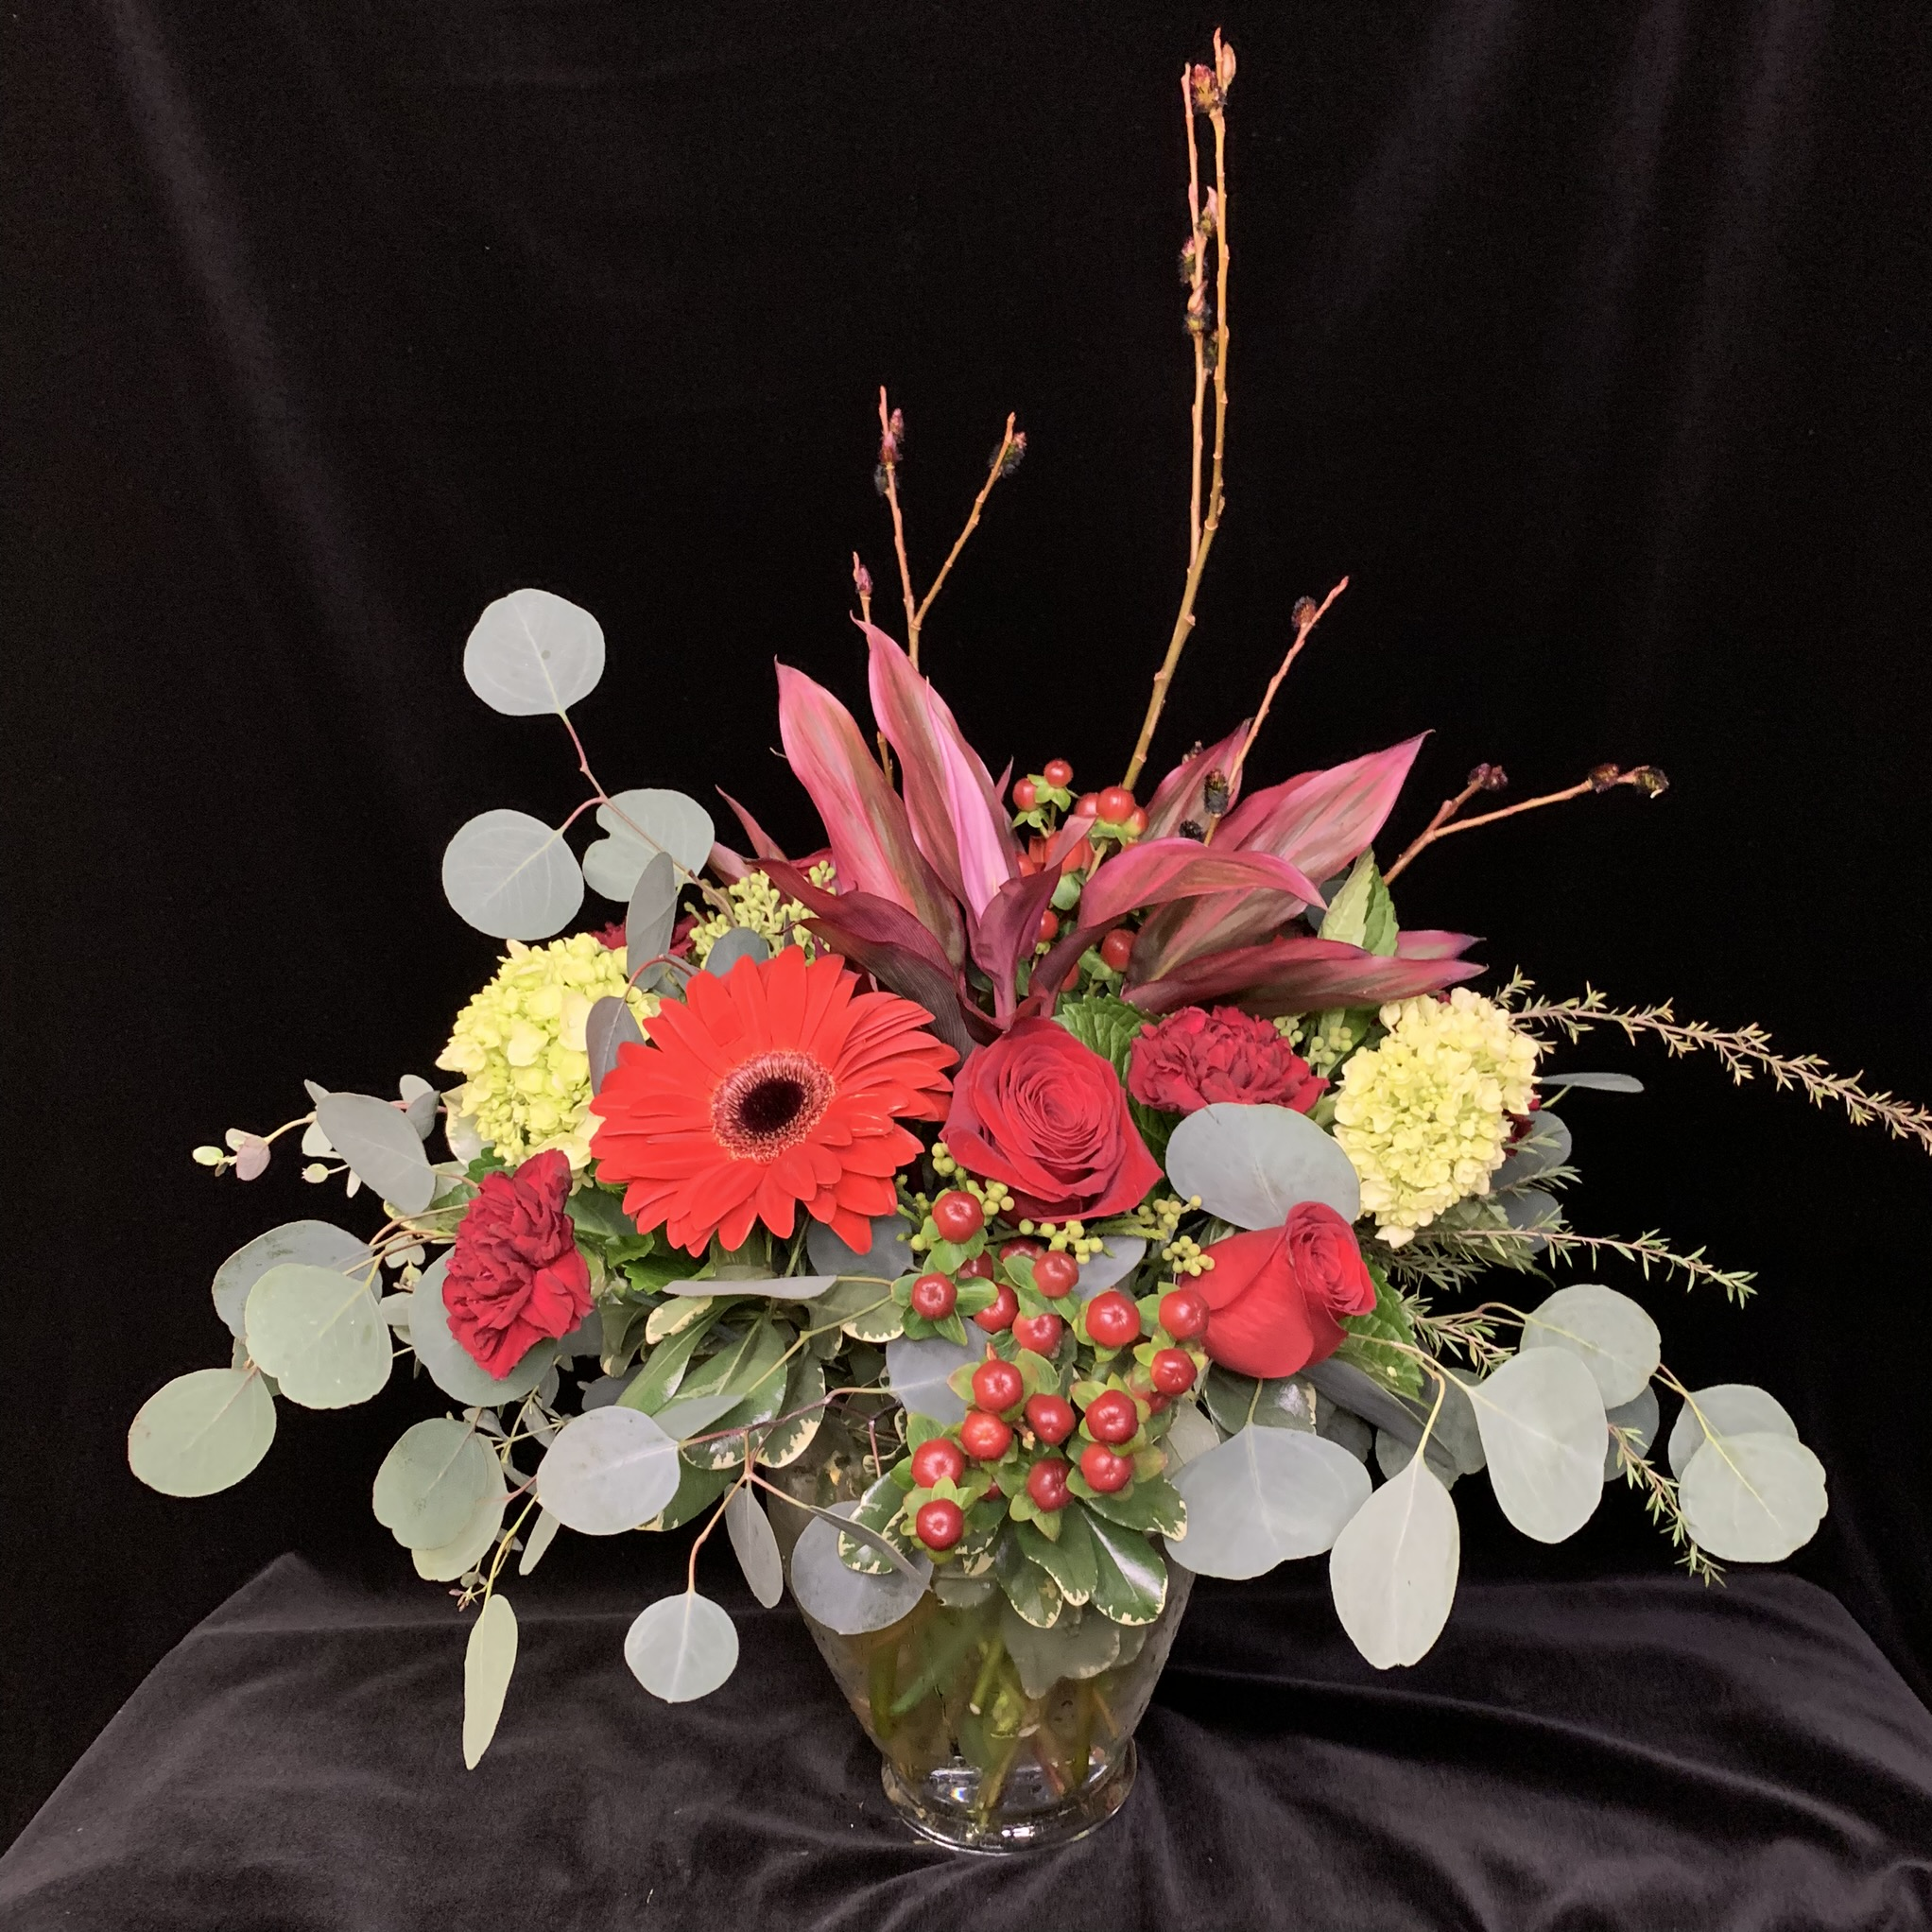 26. Dramatic reds and burgundy with eucalyptus